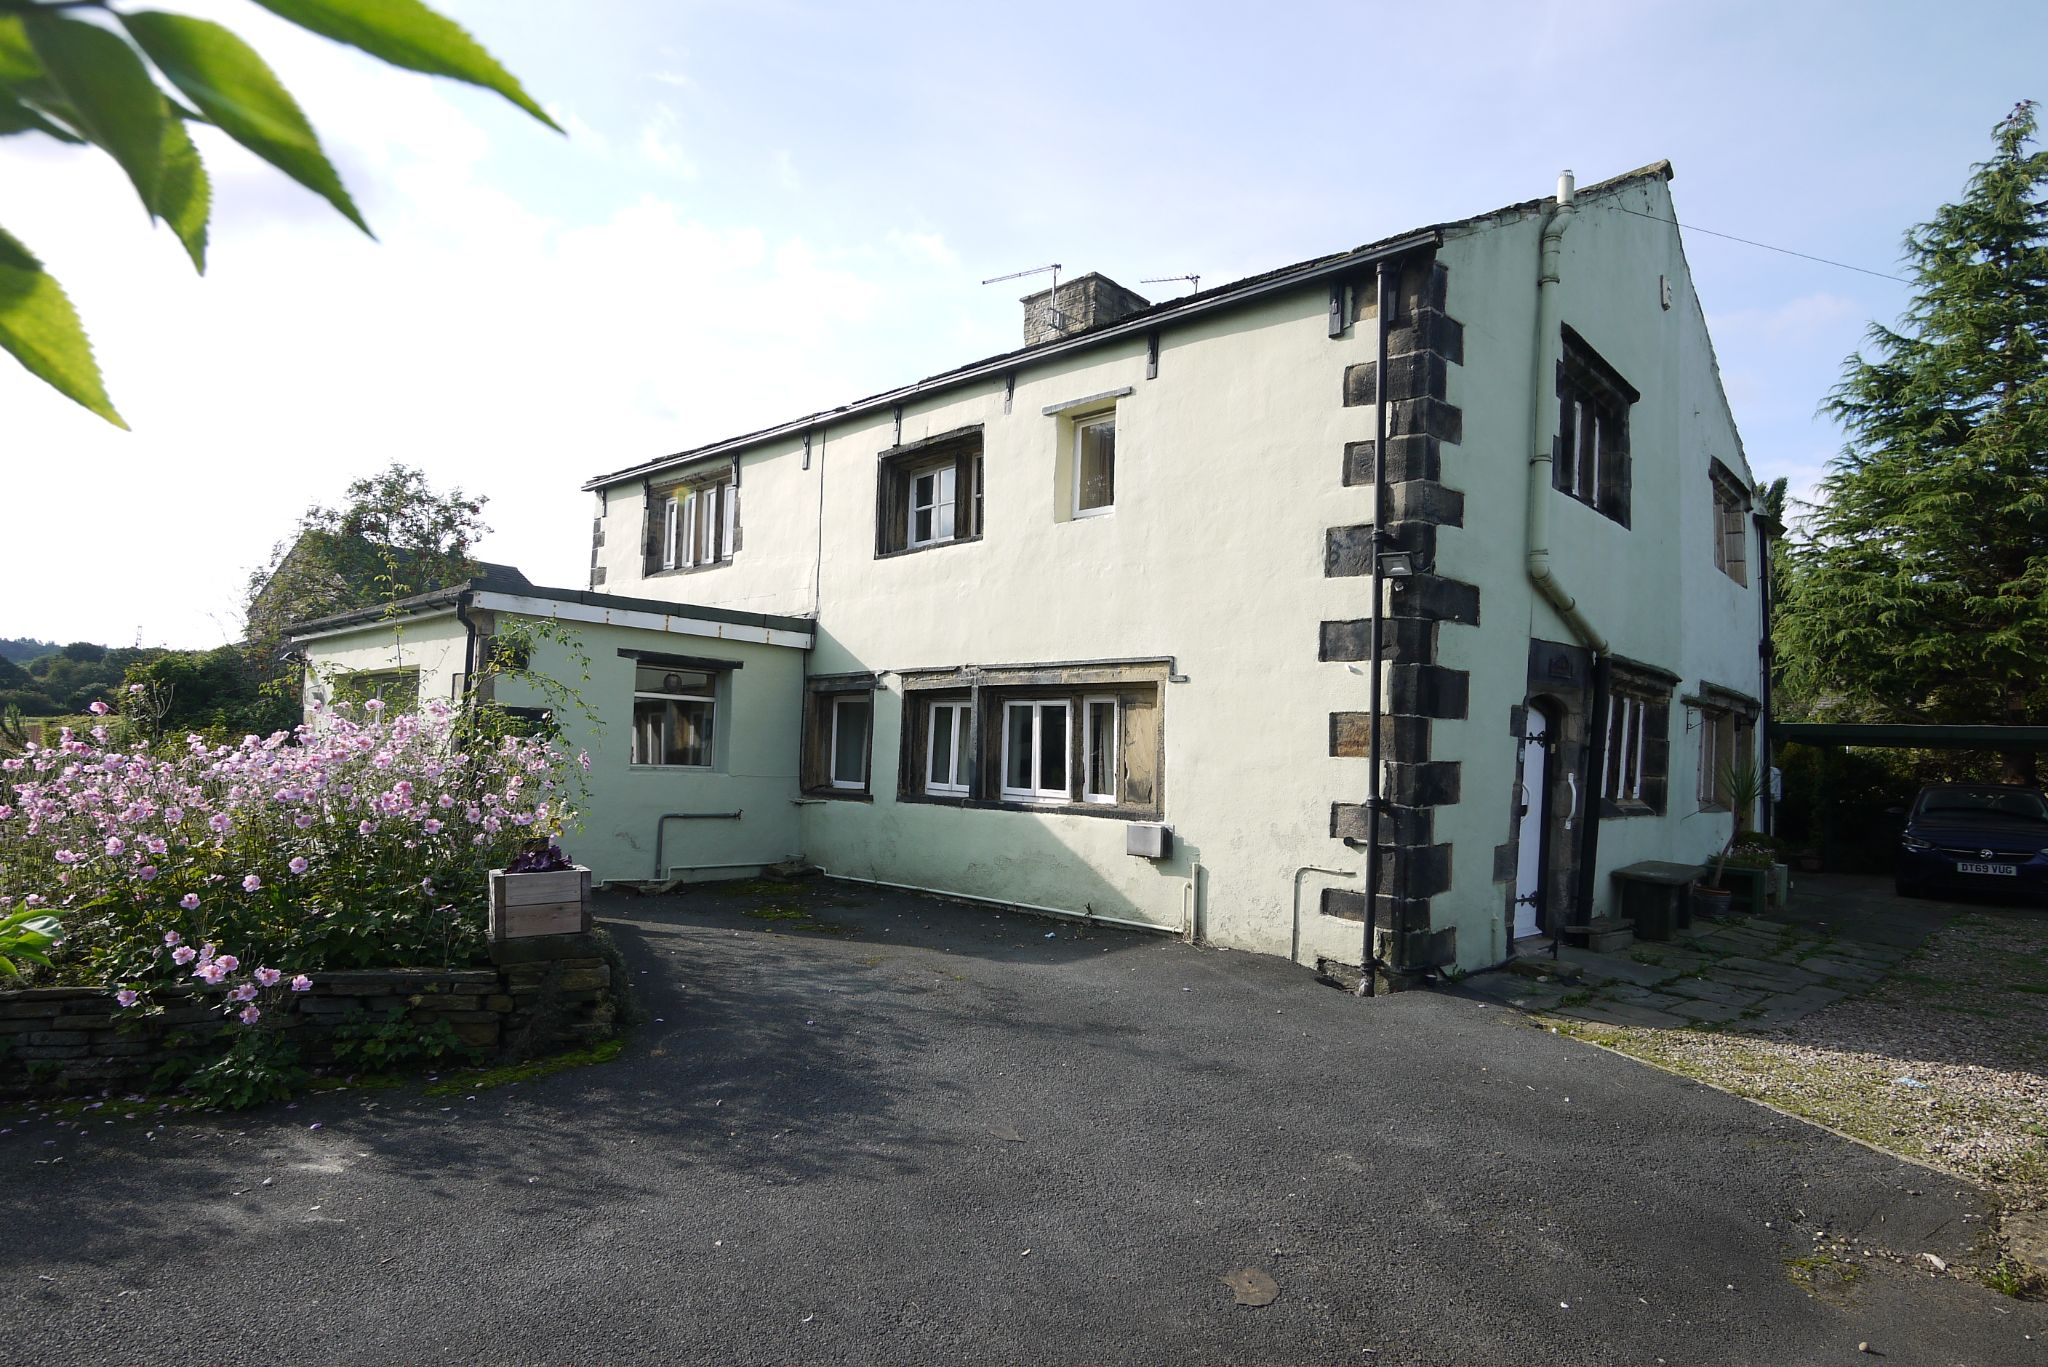 3 bedroom cottage house SSTC in Brighouse - Photograph 1.